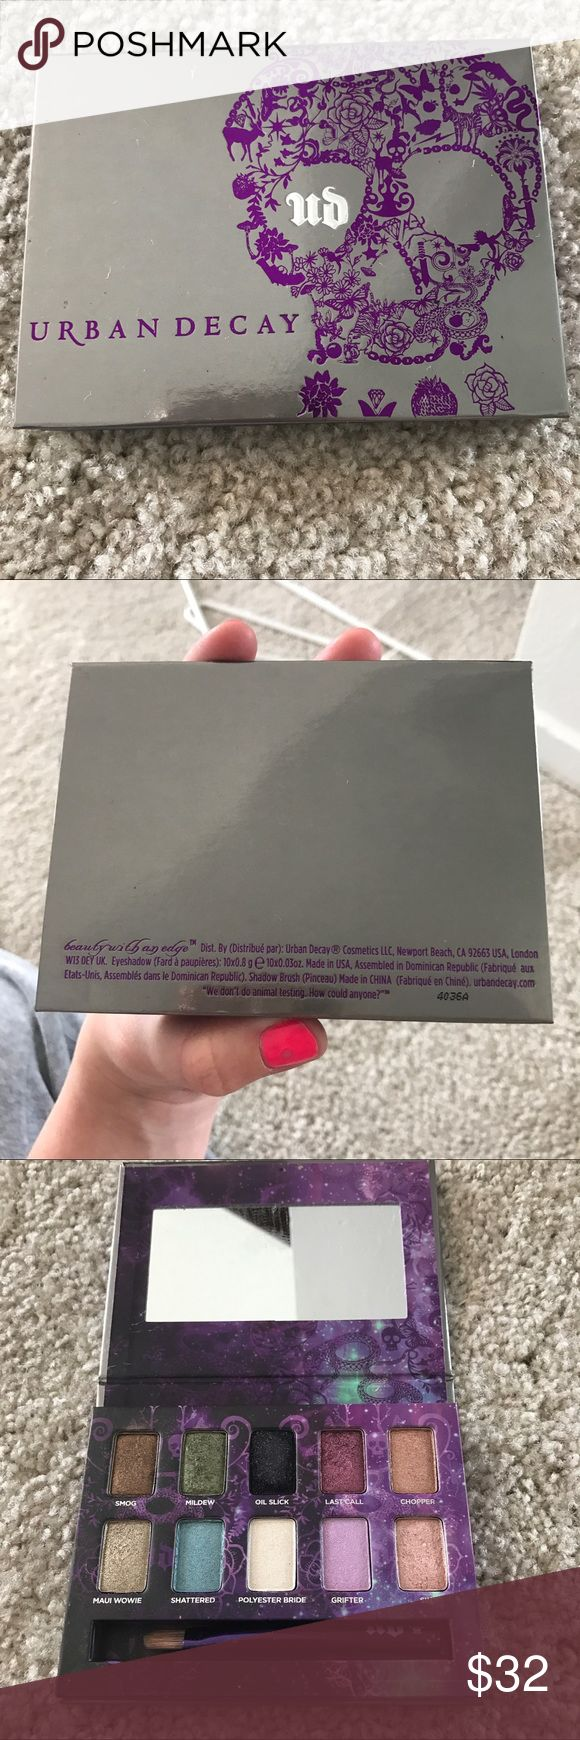 Urban Decay Ammo eyeshadow pallet GUC - the shades where hardly ever touched - but the black / oil slick - has loosened up from the pan - shadow is not falling out but if dropped it will easily break I imagine - will be packaged with extreme care Urban Decay Makeup Eyeshadow